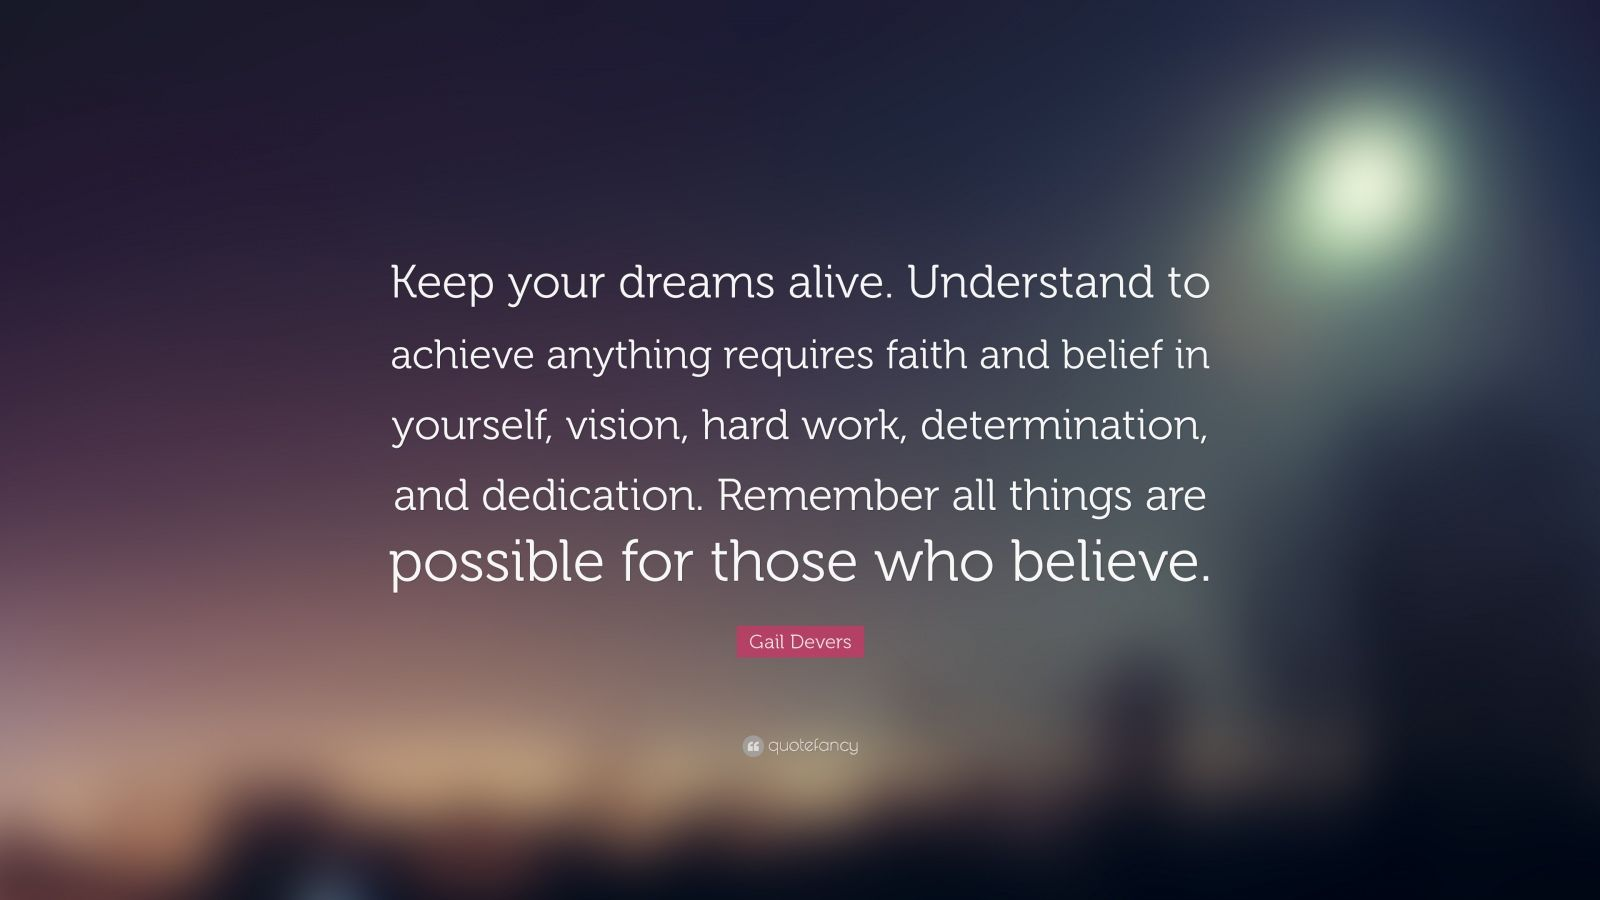 Achieve Quotes Wallpaper Gail Devers Quote Keep Your Dreams Alive Understand To